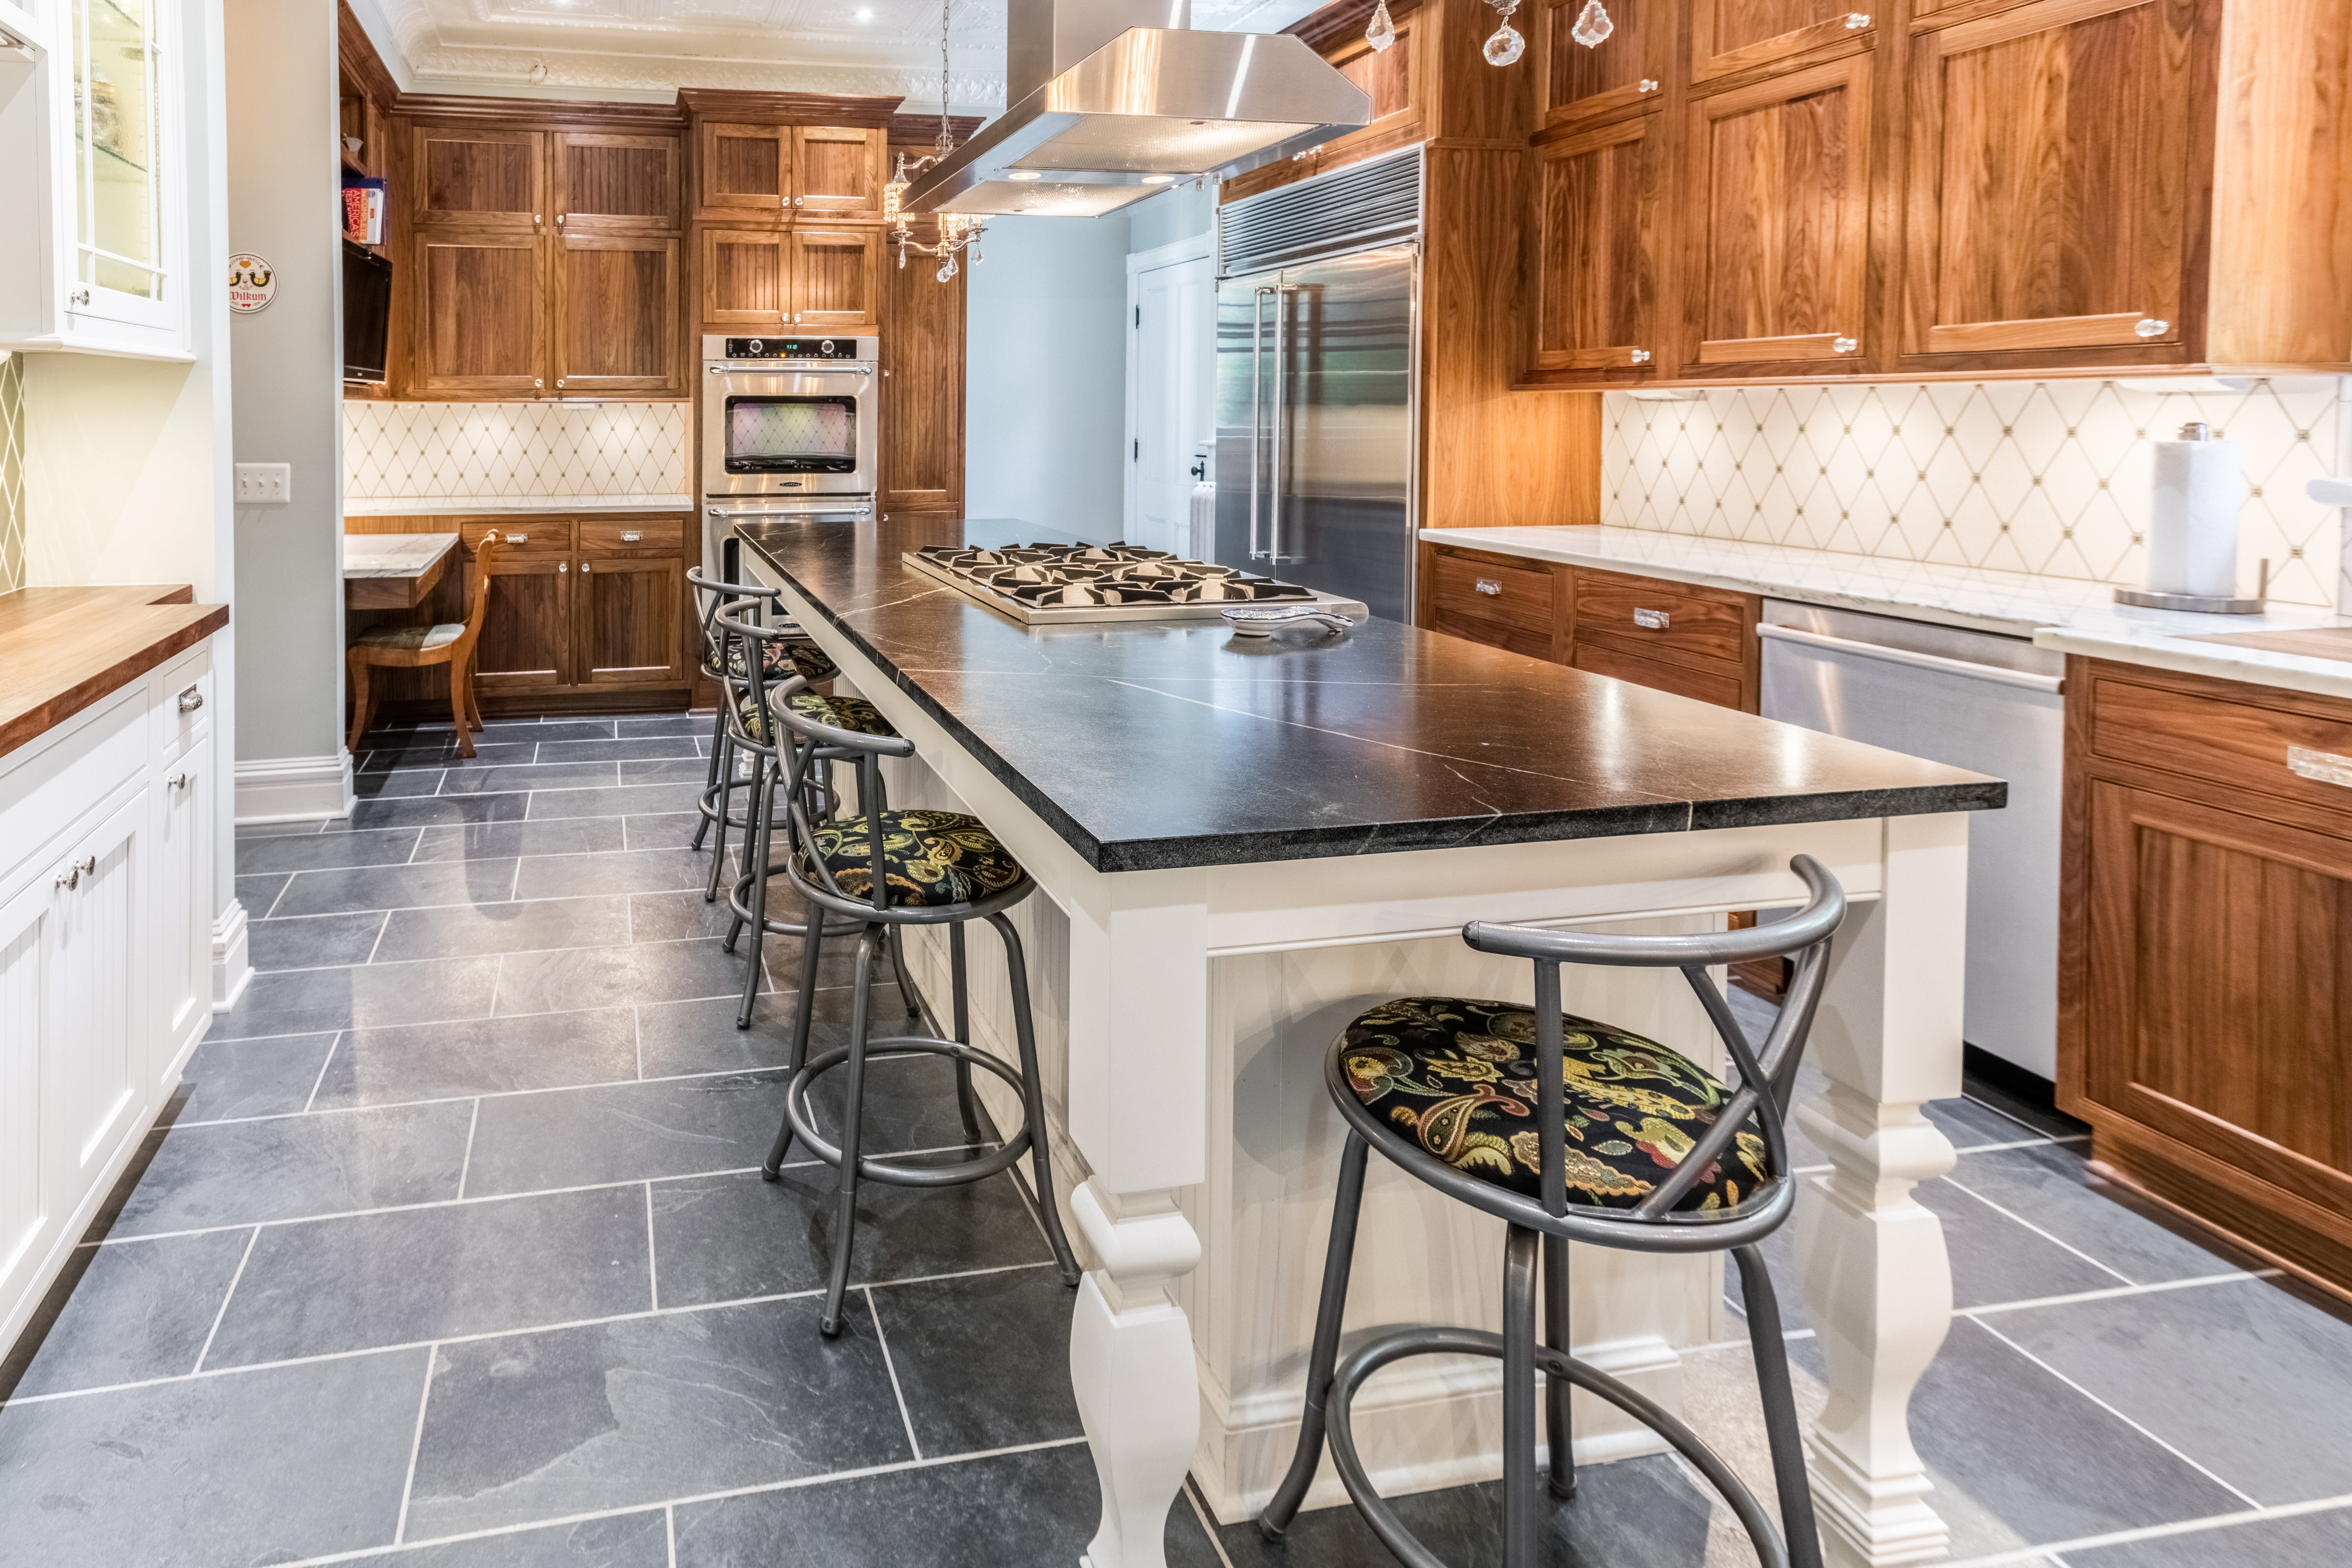 5 Great Uses For Natural Stone Tiles